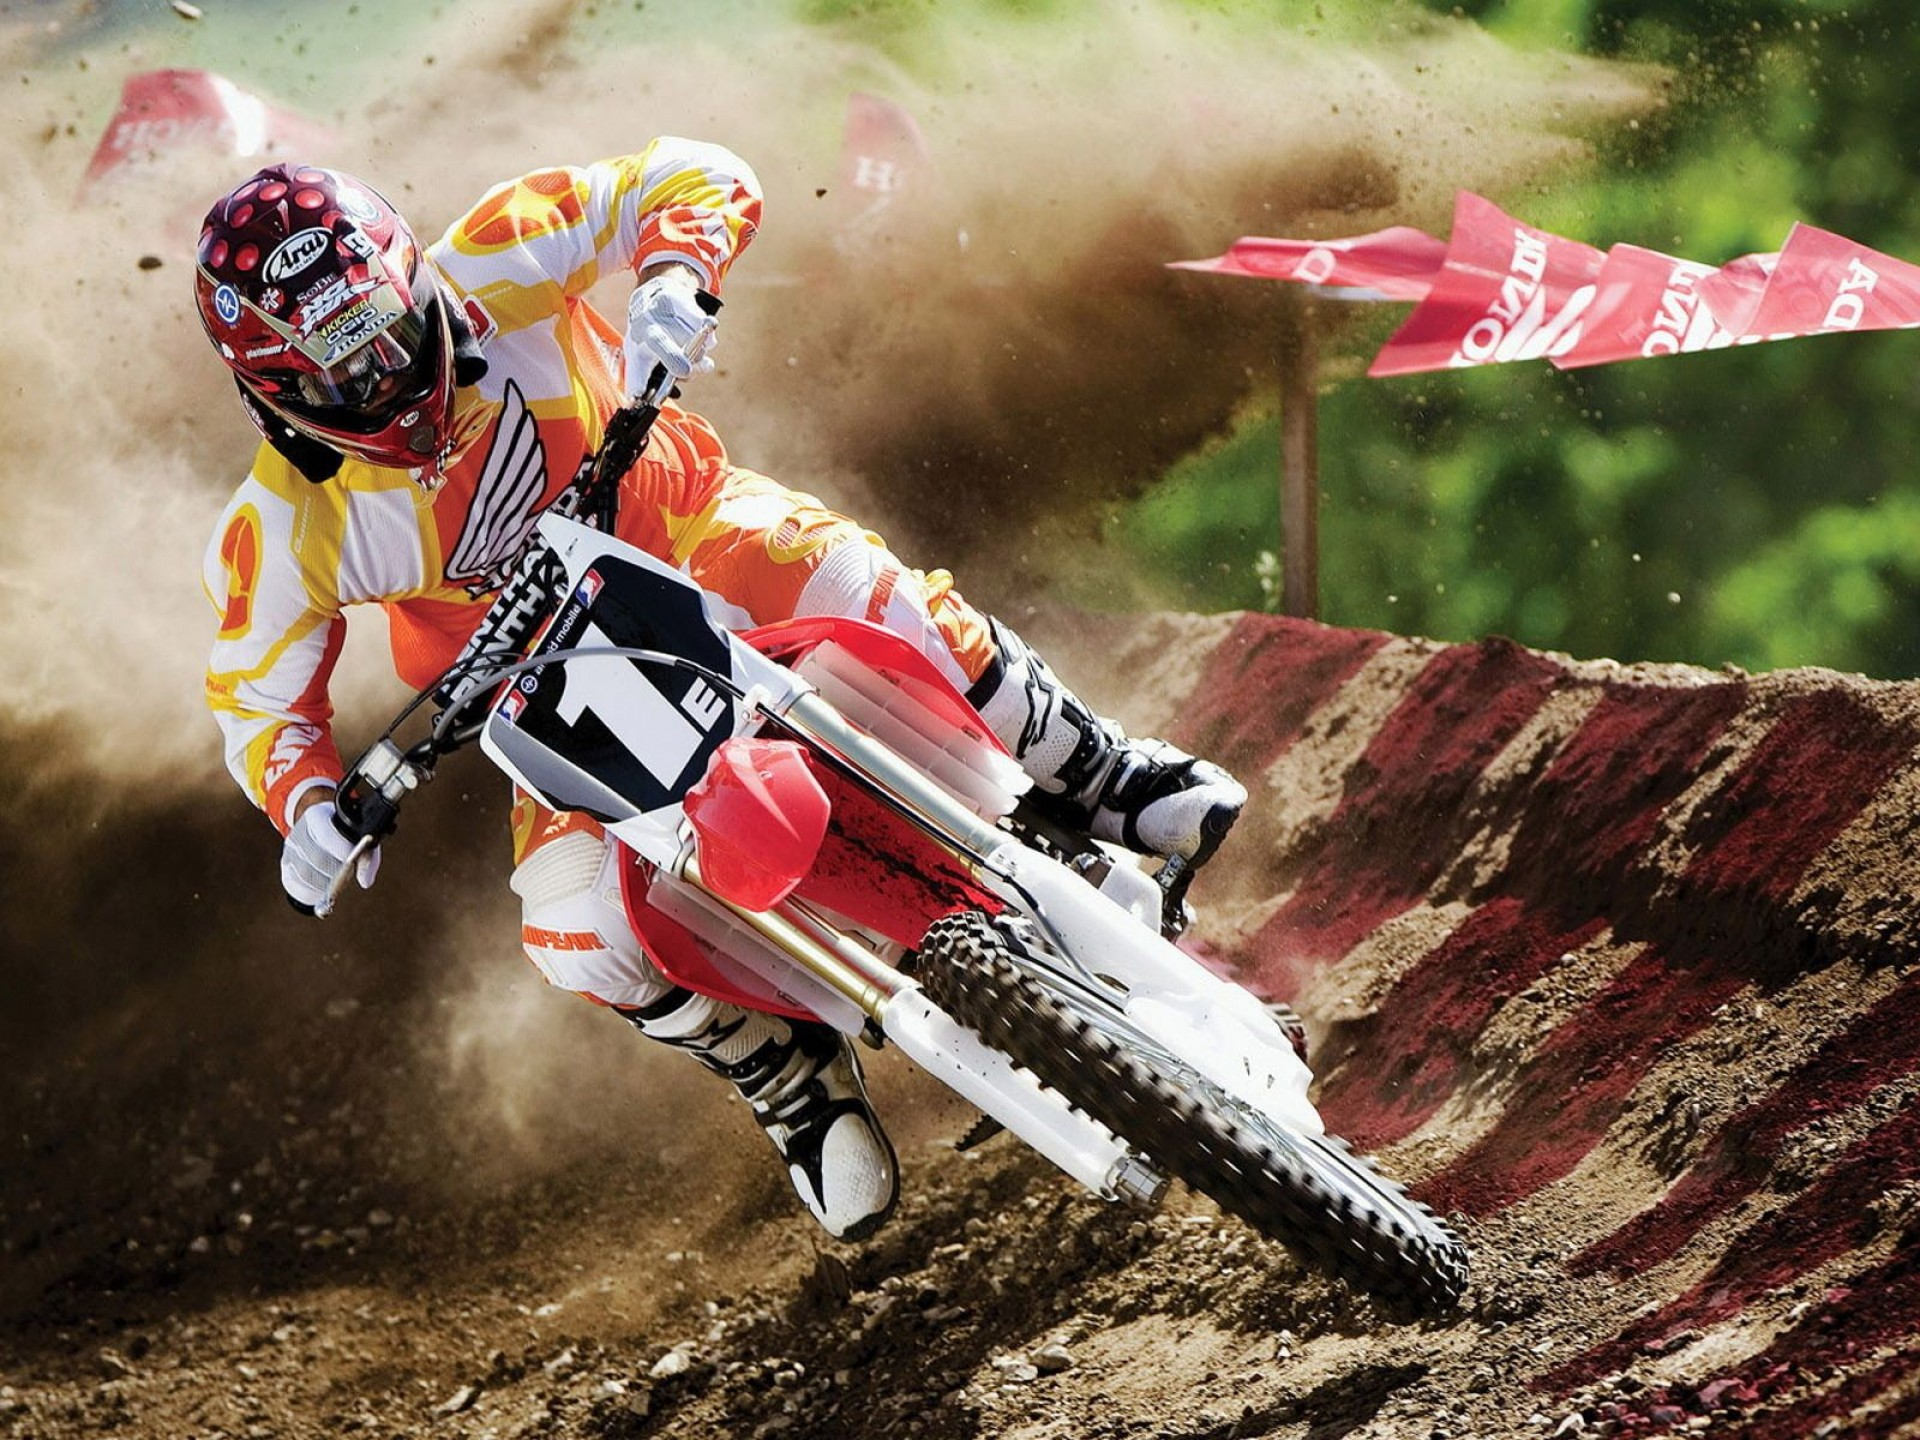 Cool dirt bike pictures